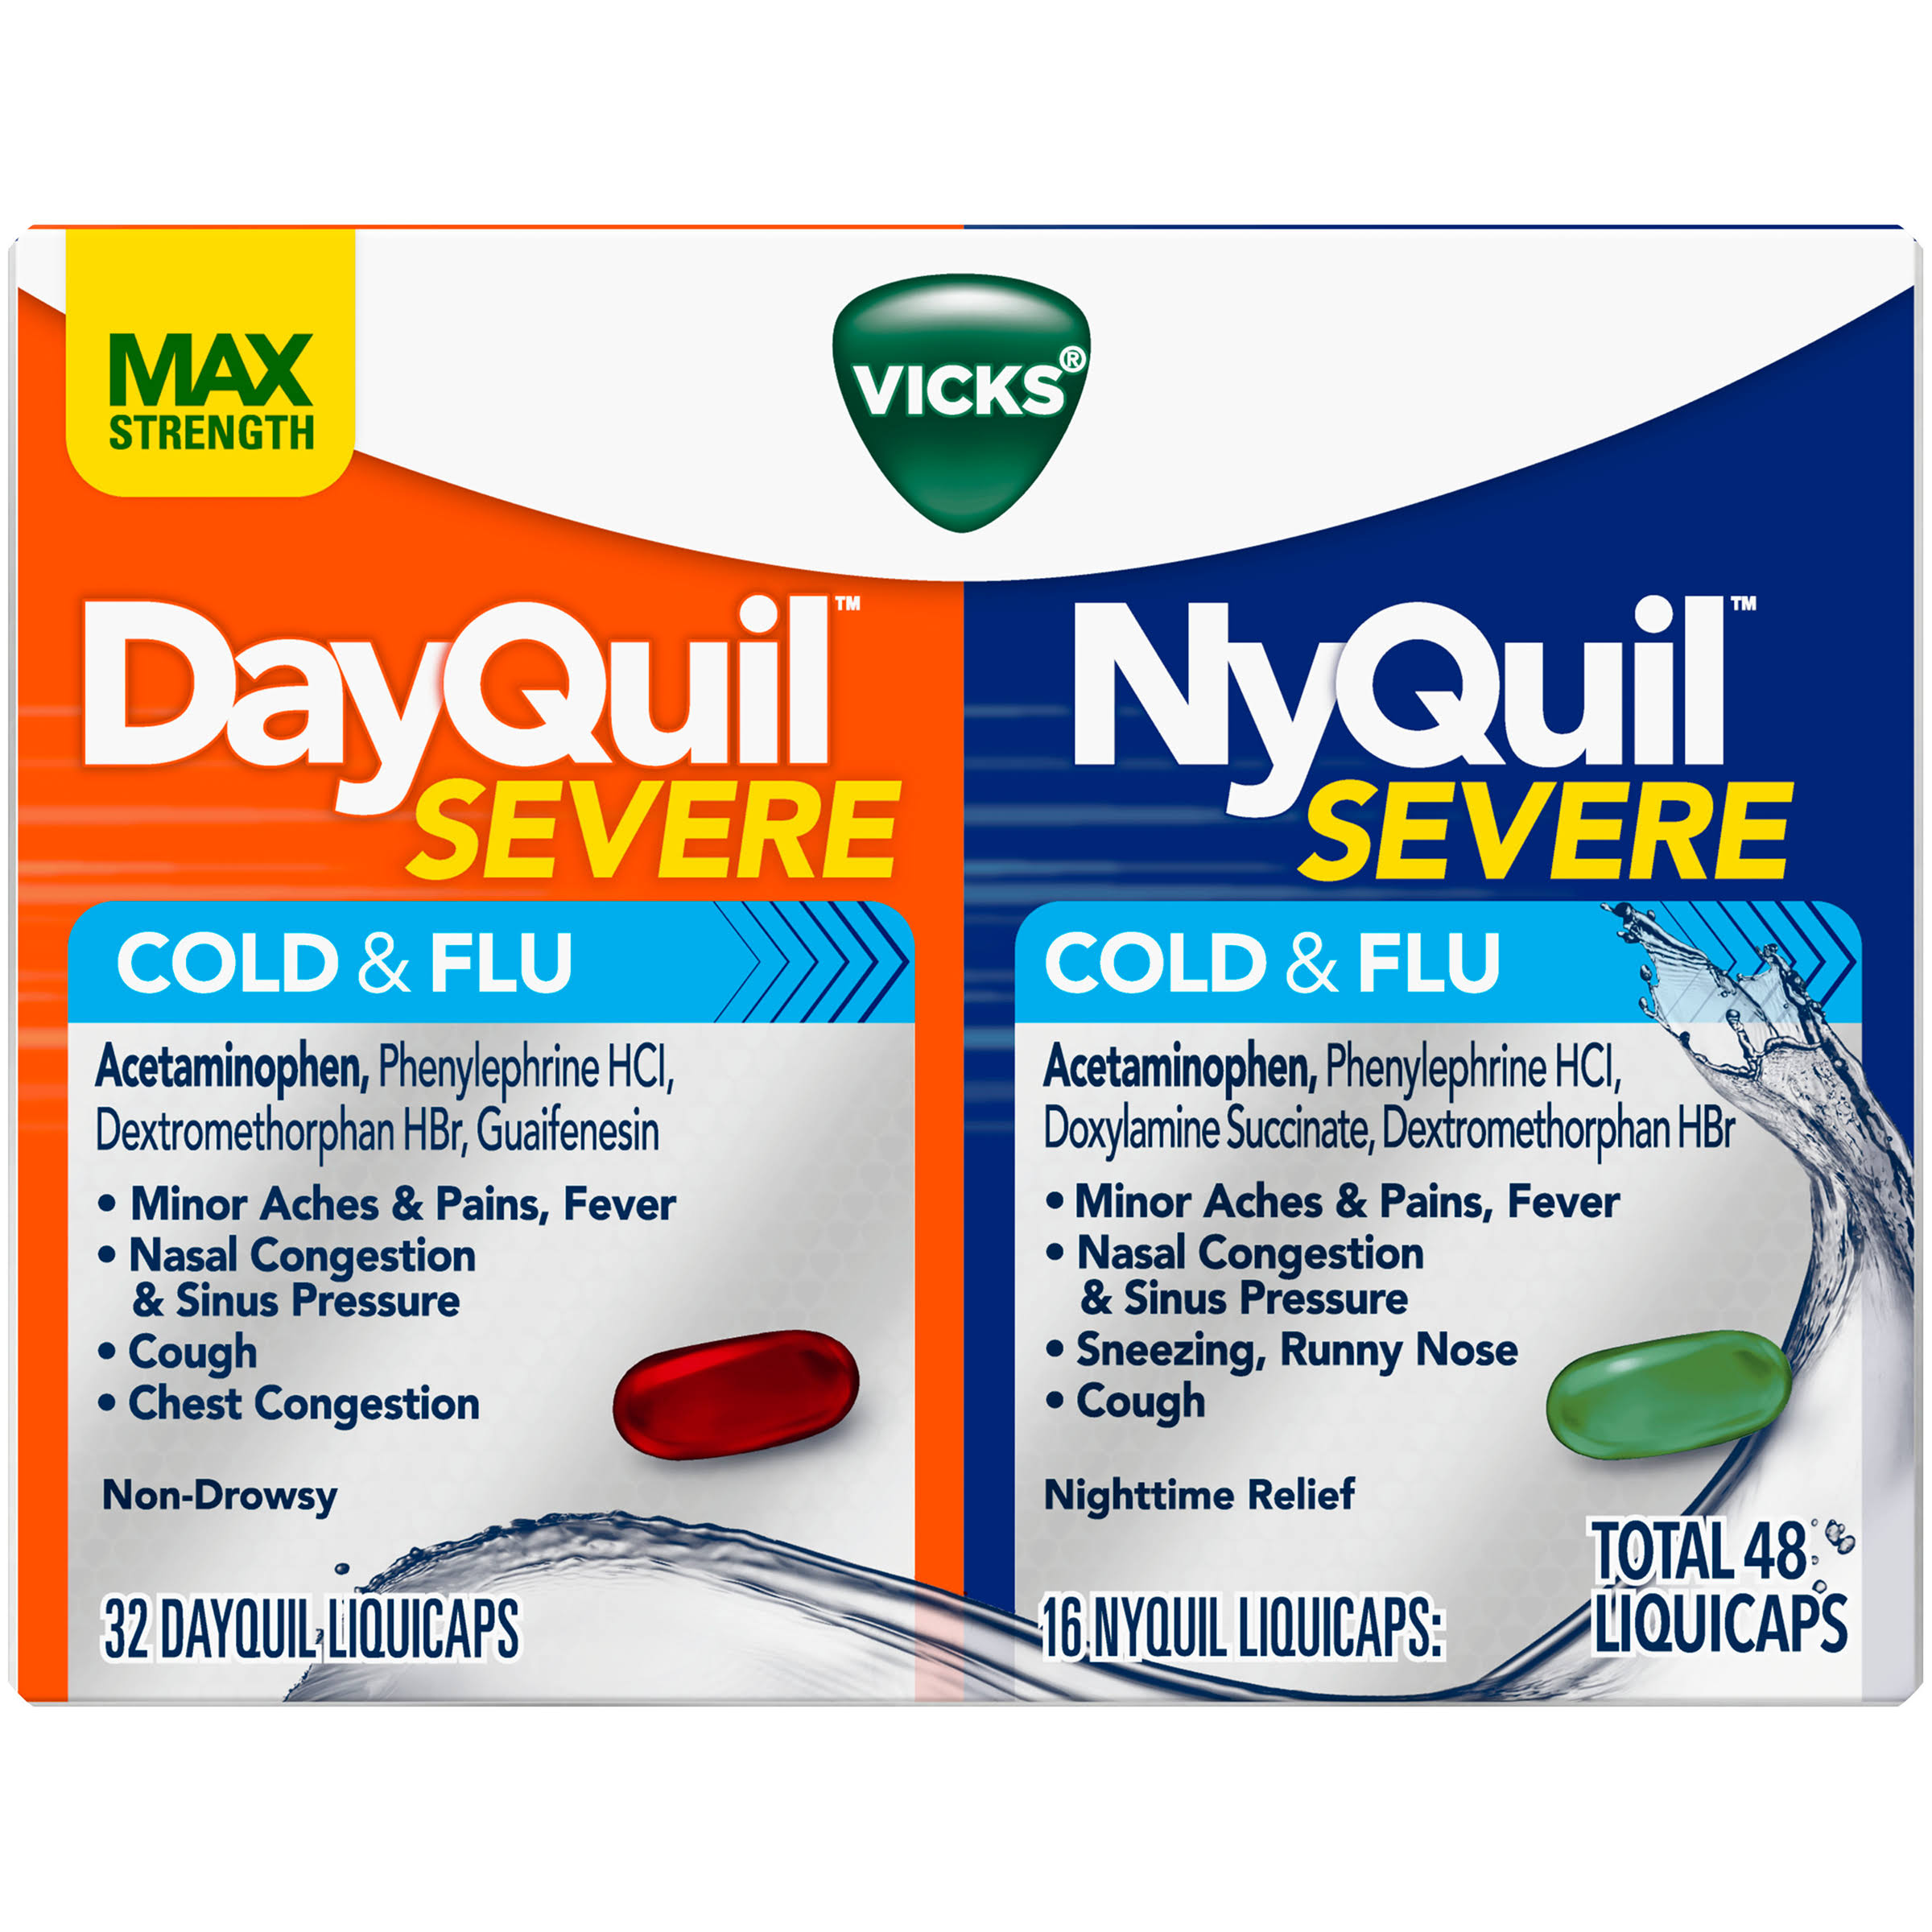 Vicks Dayquil and Nyquil Severe Cough Cold and Flu Relief Liquicaps Convenience Pack - 48ct